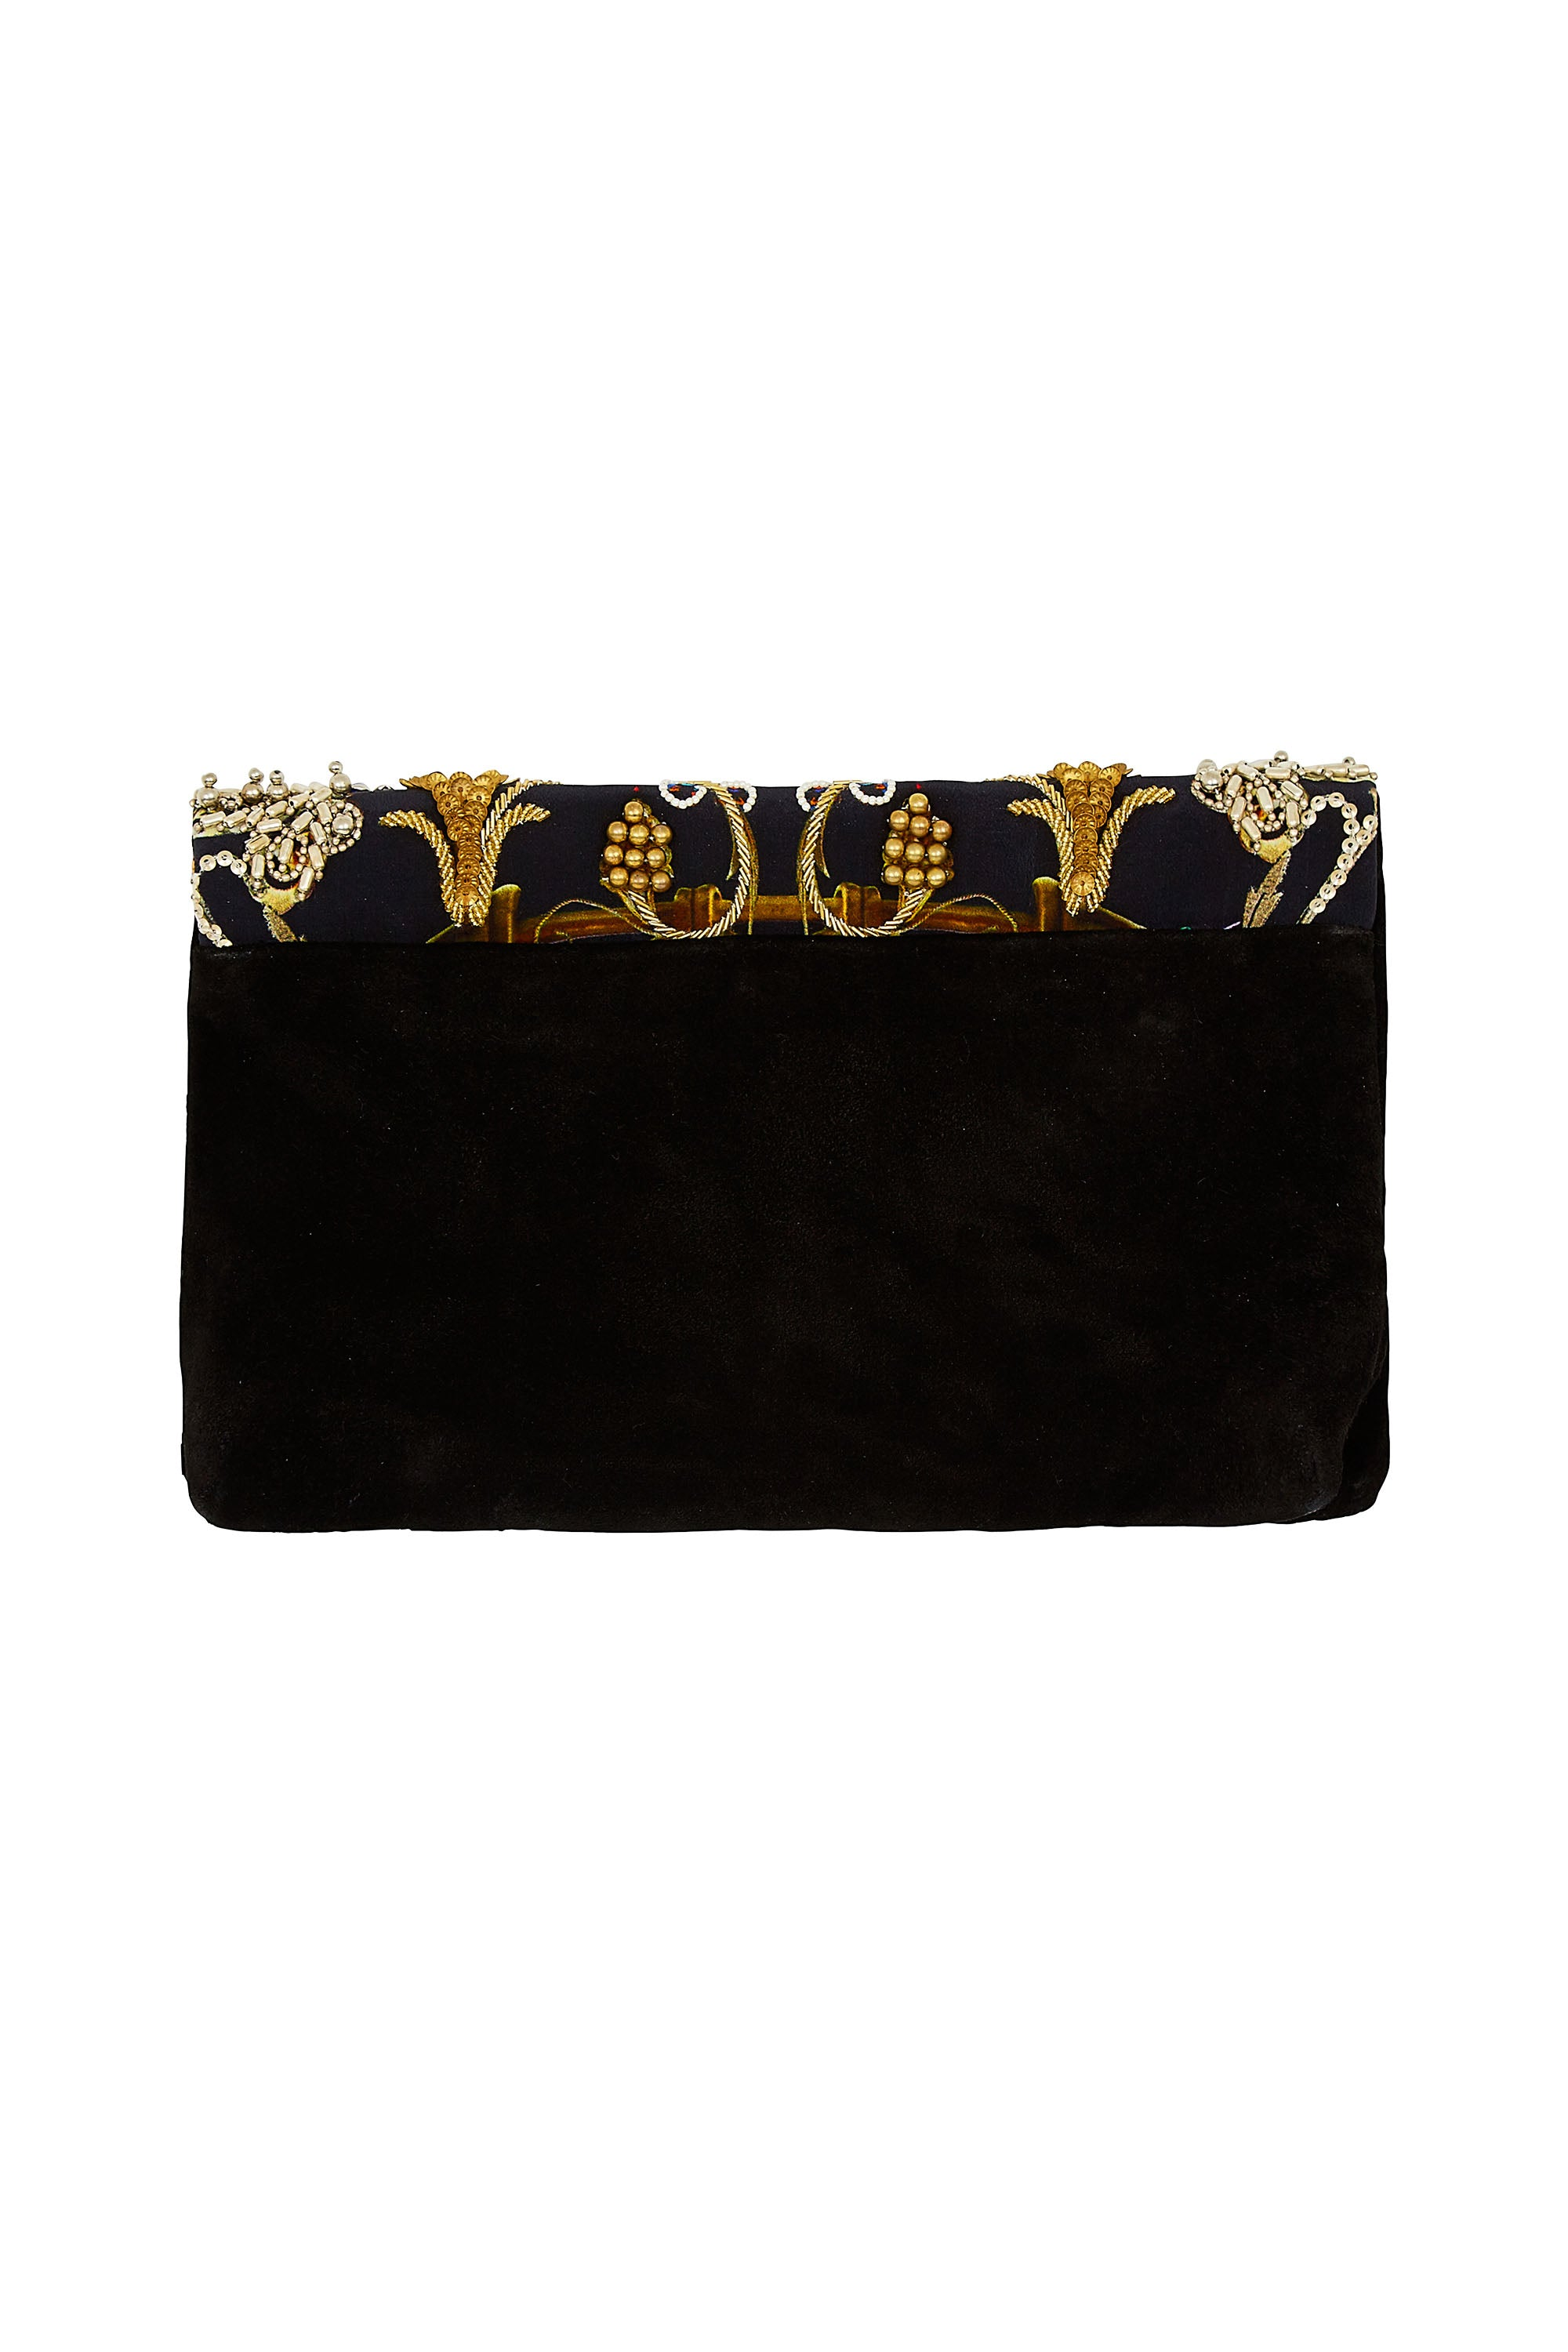 DANCING IN THE DARK EMBELLISHED CLUTCH